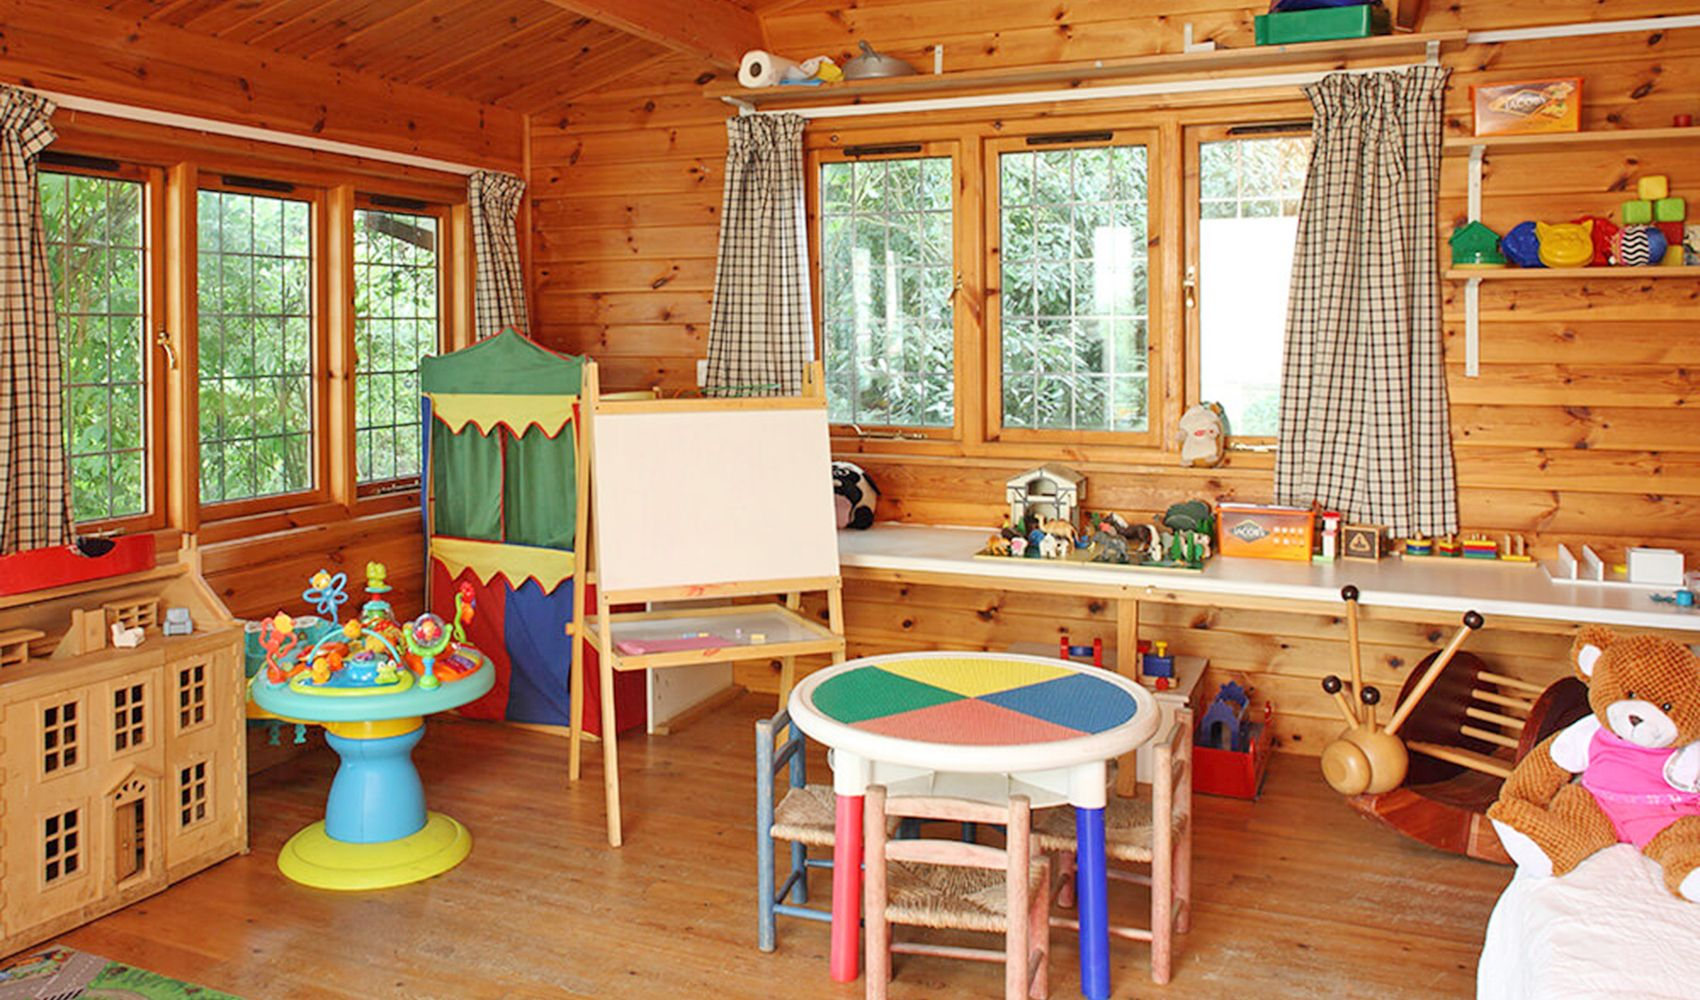 Shared heated play cabin with dressing up gear, toys & arts materials